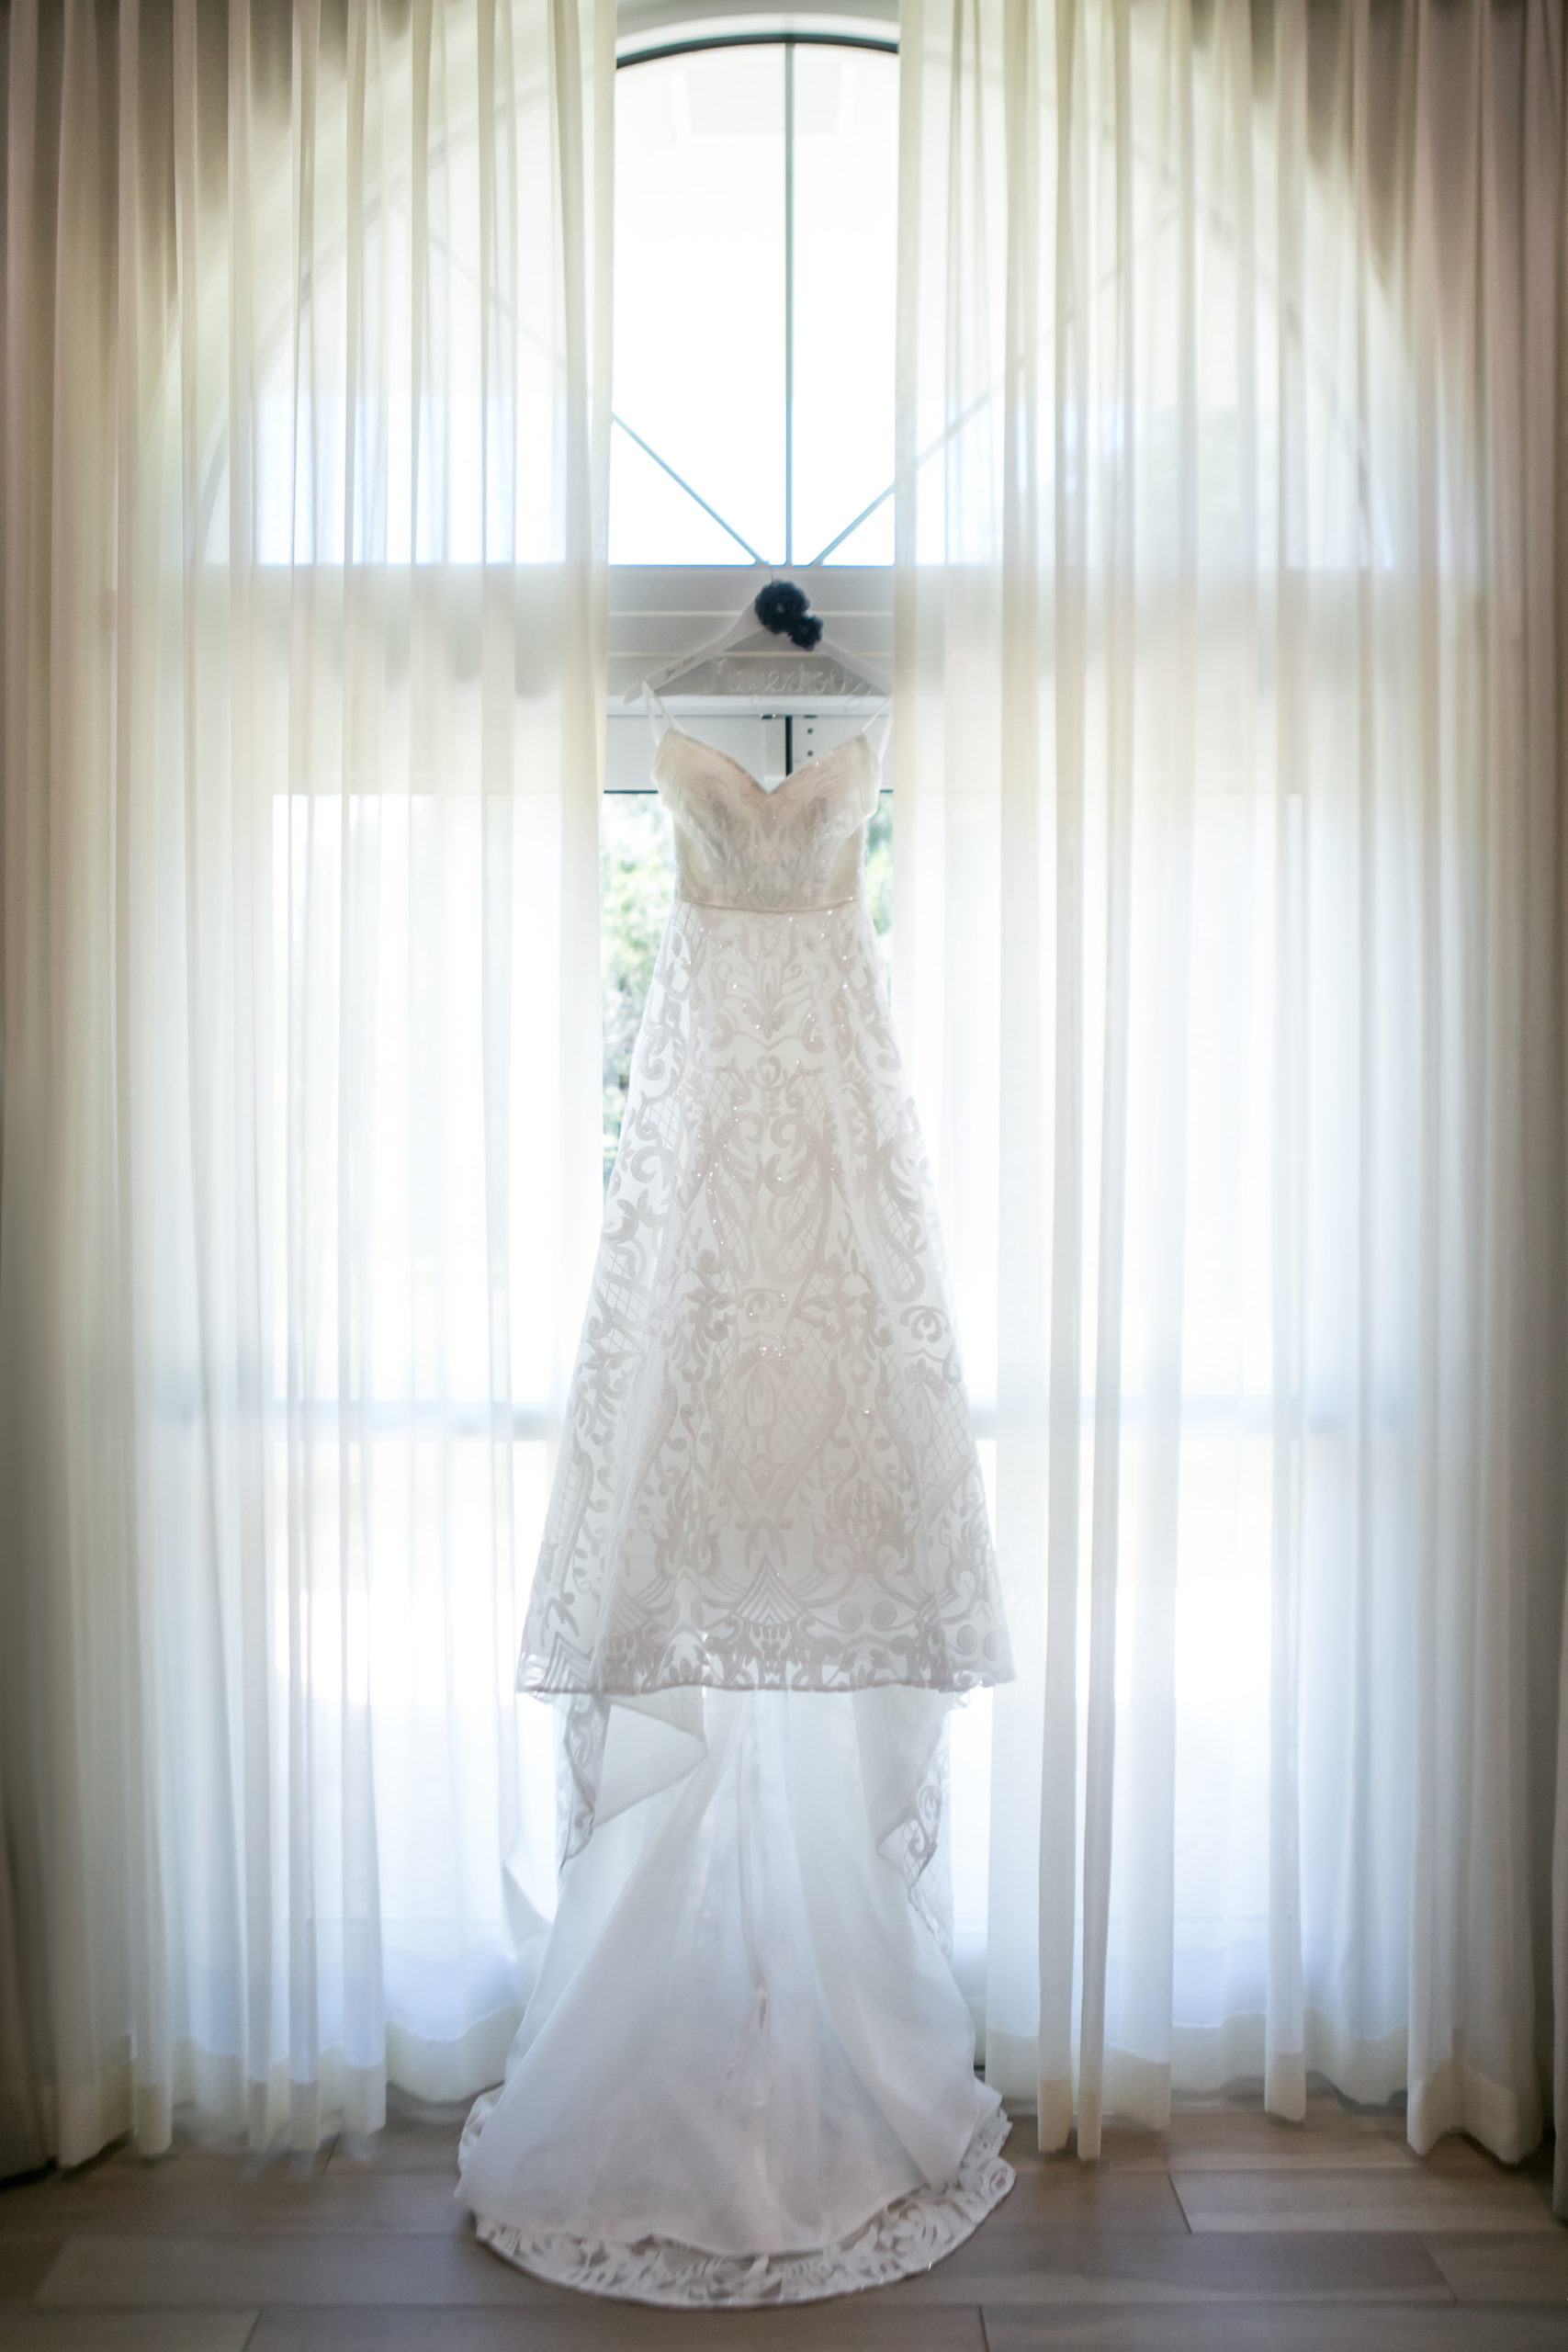 Romantic Lace A-Line Strapless Sweetheart Ashley & Justin Wedding Dress   Tampa Bay Wedding Photographer Carrie Wildes Photography